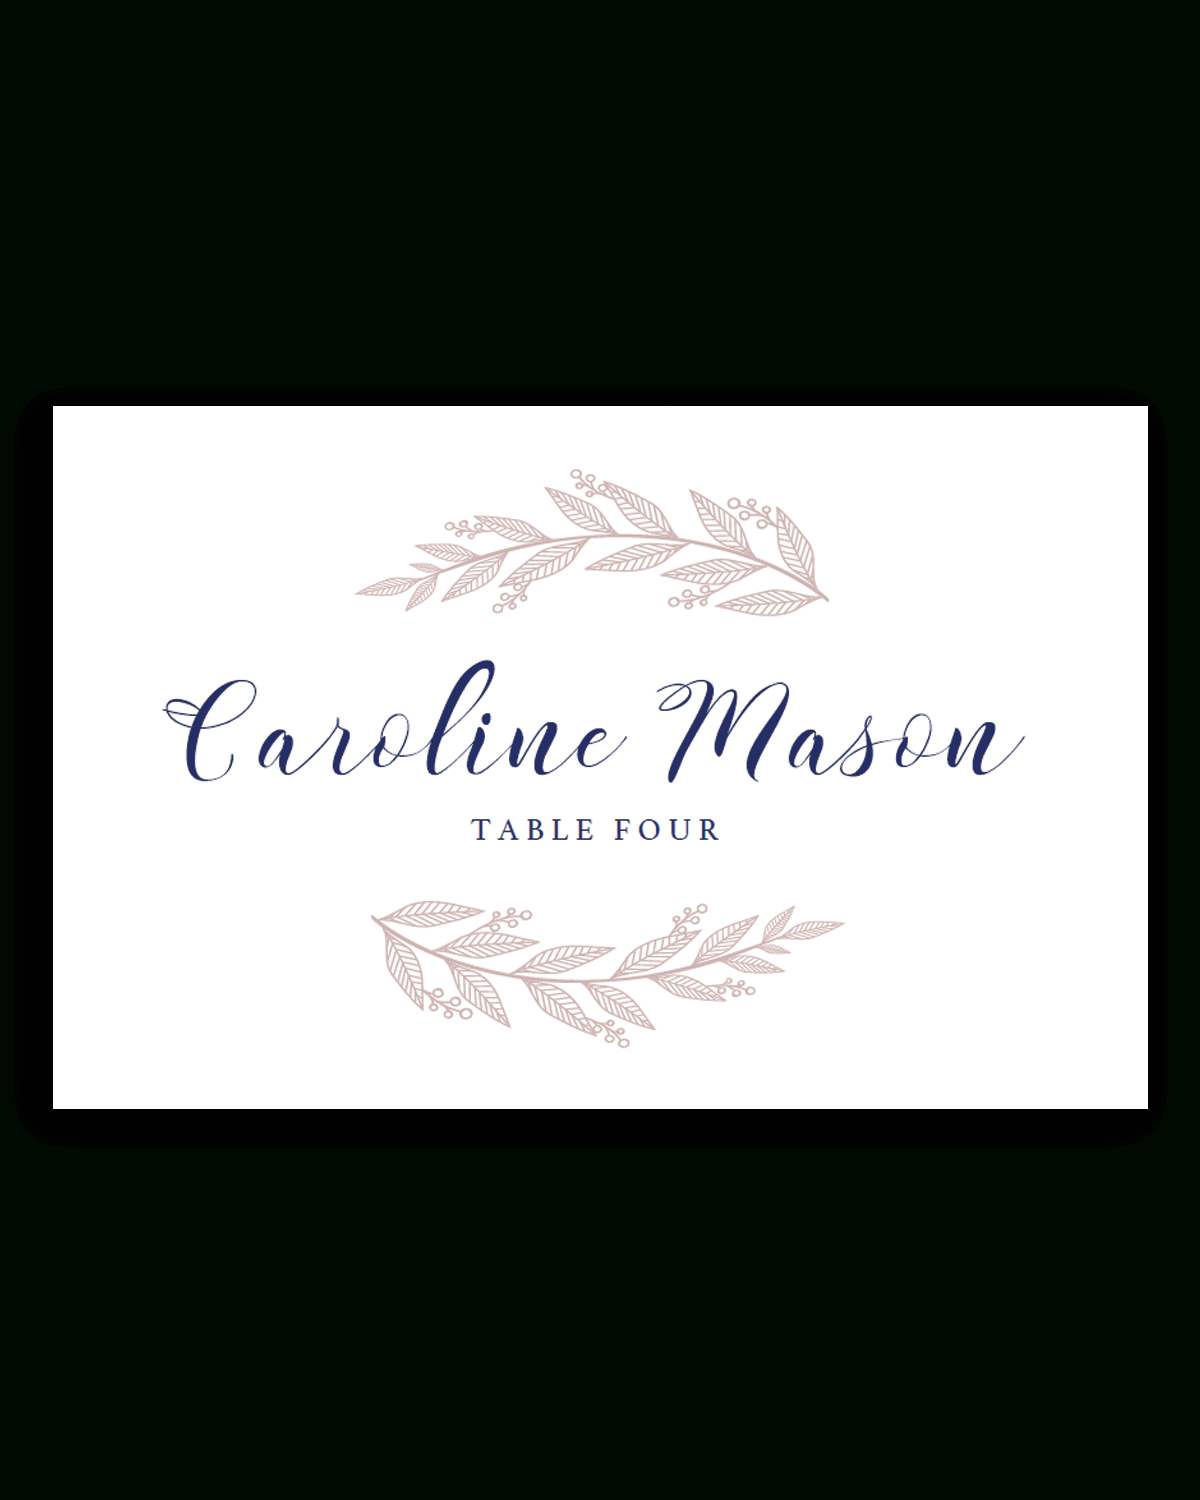 Name Place Cards Template Amazing Ideas Free Card Download Throughout Free Place Card Templates Download